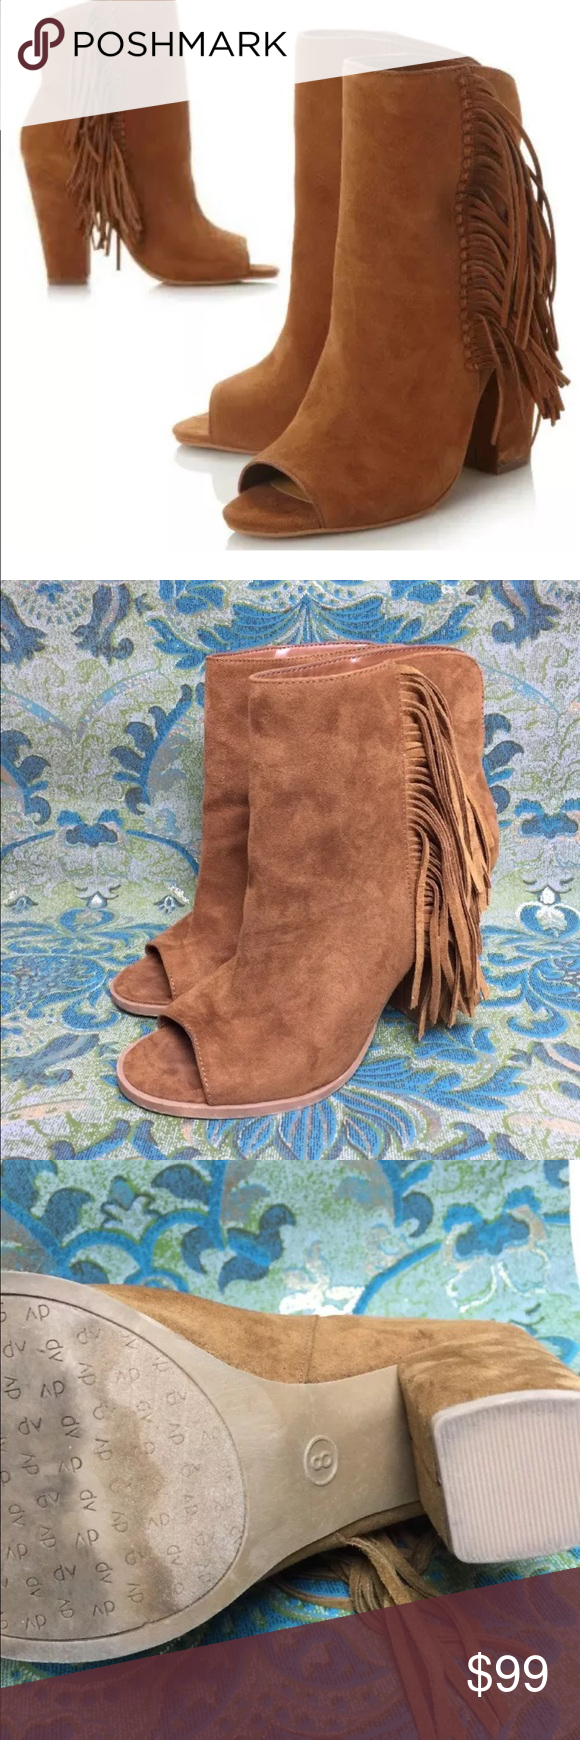 Dolce Vita Brown DV Mazarine Fringe Peep Toe Boots ◑ Excellent Condition ◑ Ships within one day of payment.   ◑ No trades   ✿ Thank you for looking & feel free to check out my other items! ✿ Dolce Vita Shoes Ankle Boots & Booties